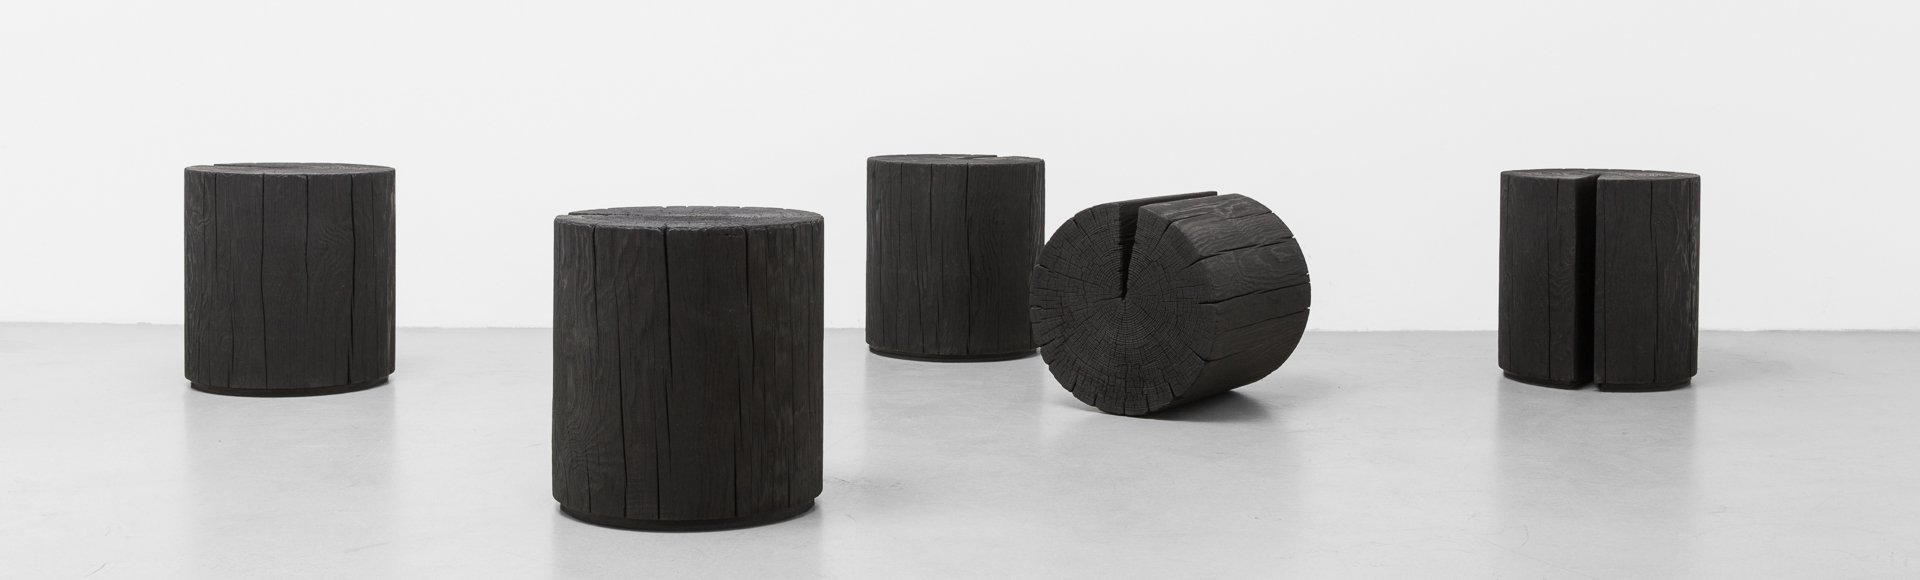 Hono Stool Uhuru Seating